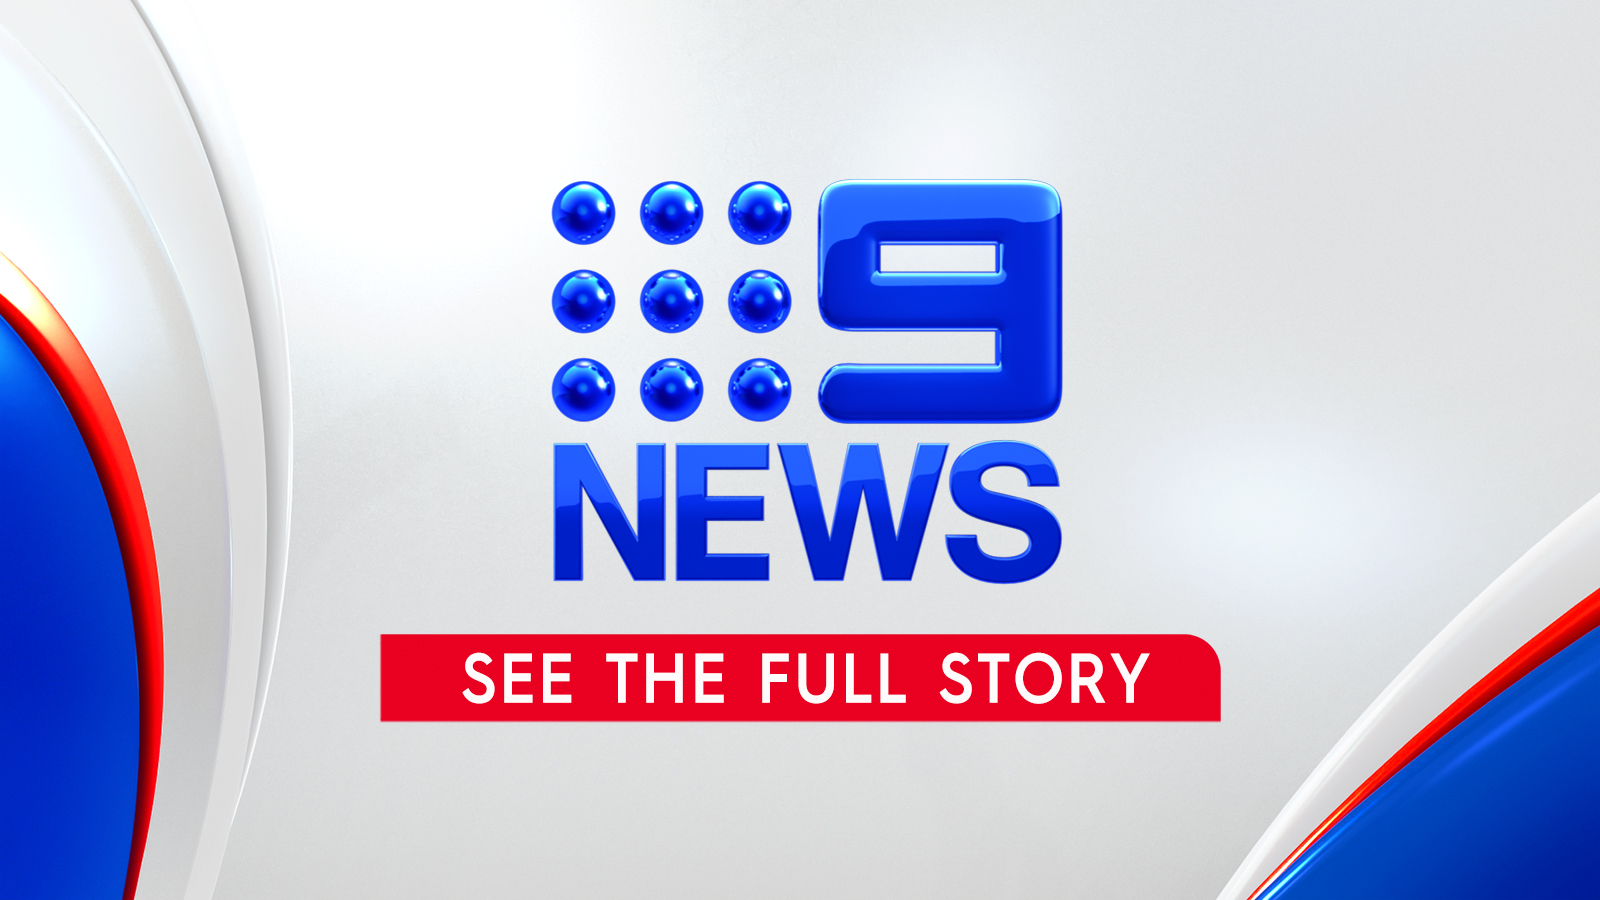 9 news Australia National